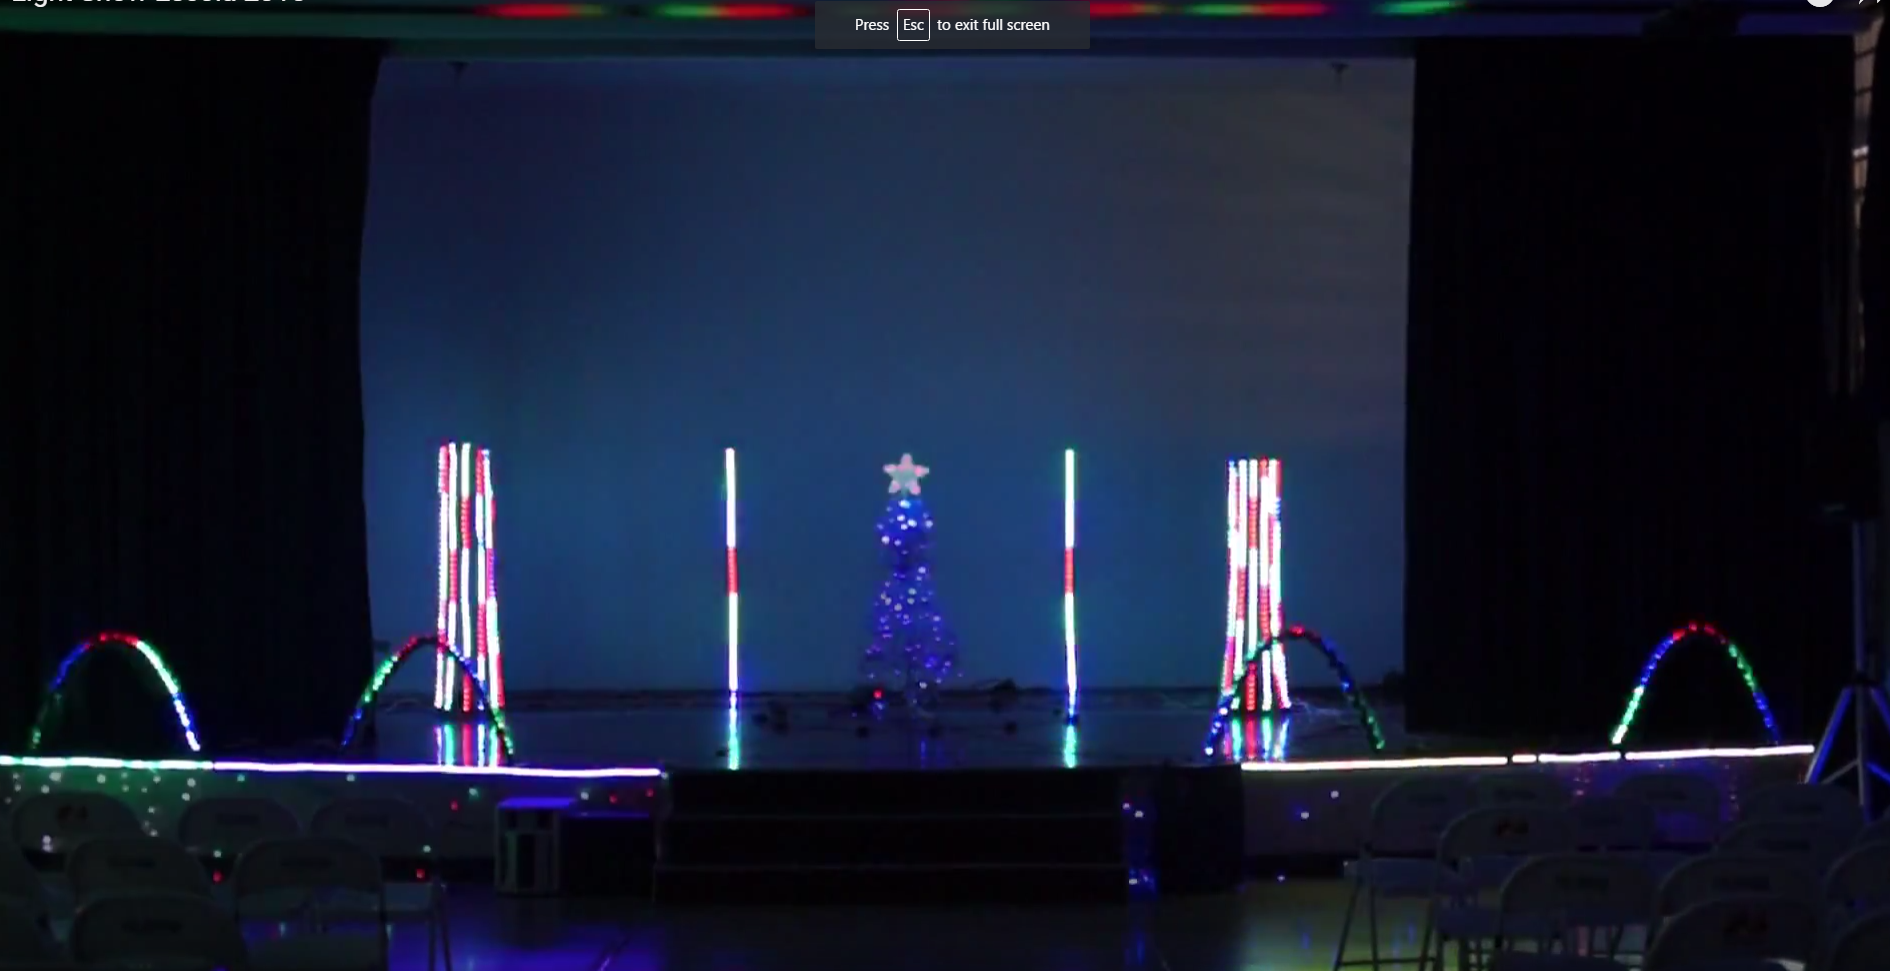 Arduino + Vixen + School U003d Awesome Christmas Light Show!